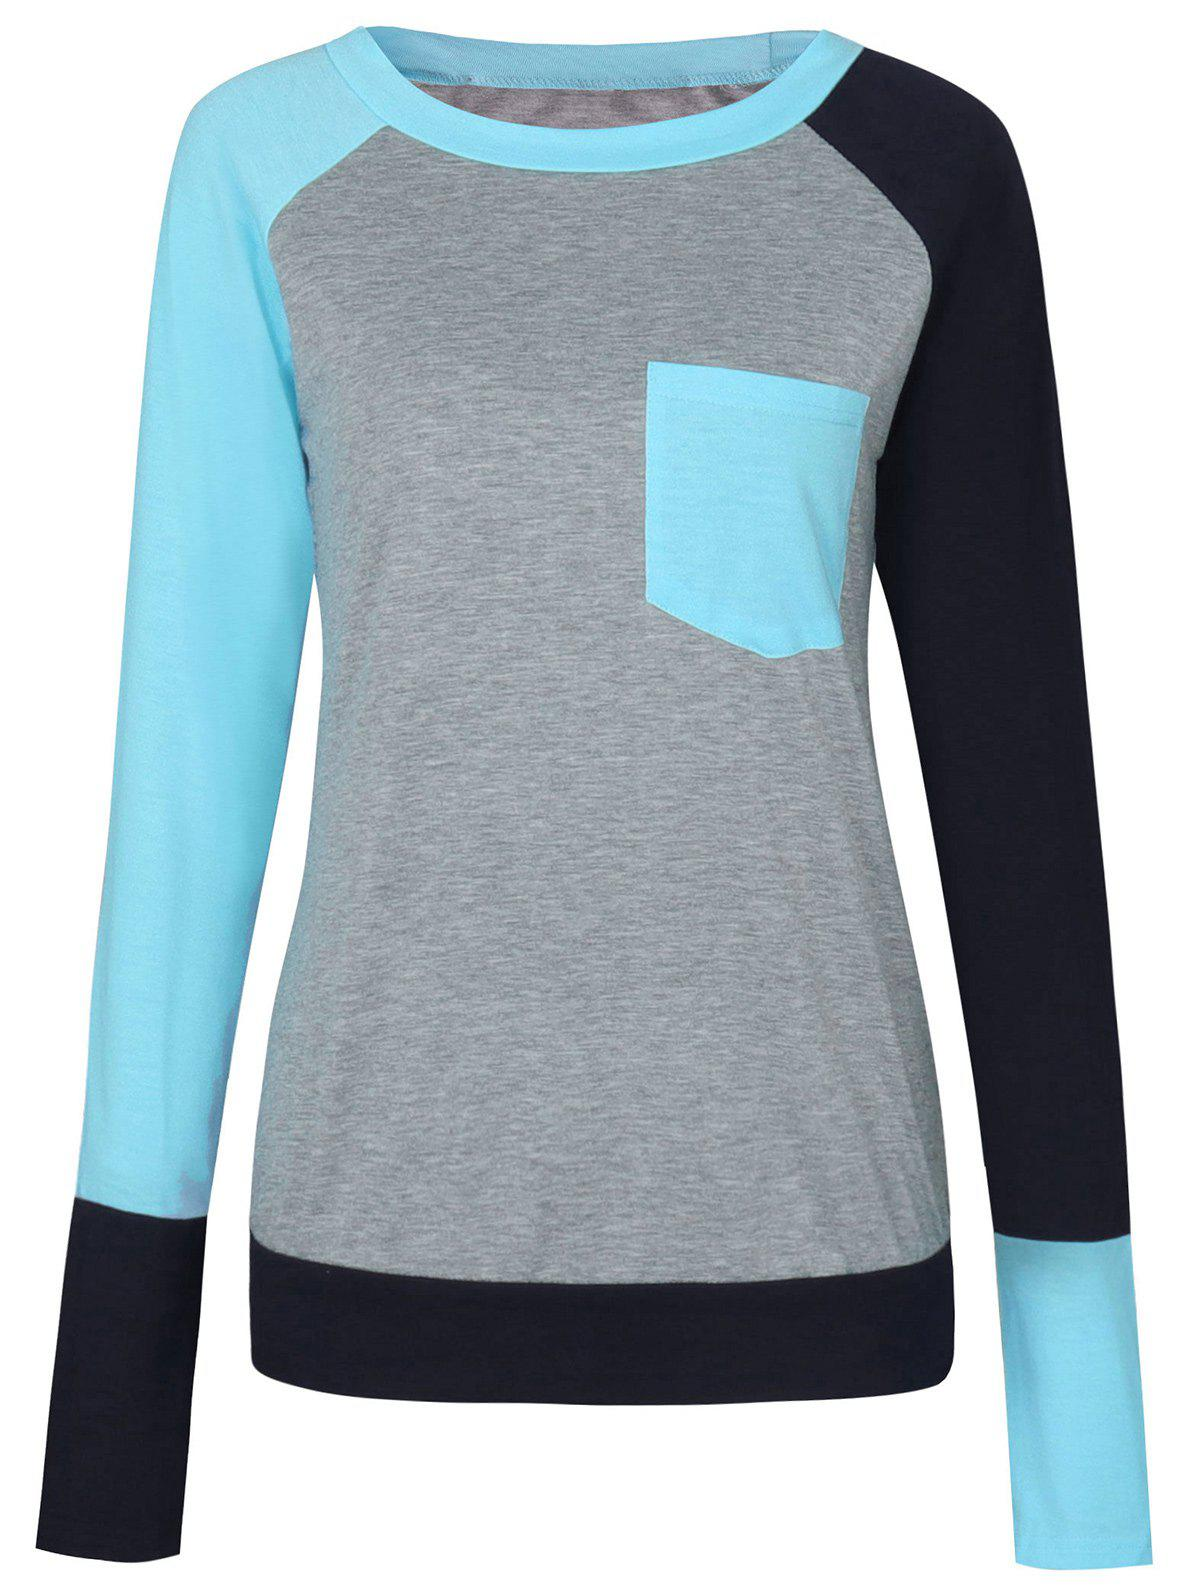 Pocket Color Block Raglan Sleeve T-shirtWOMEN<br><br>Size: L; Color: LAKE BLUE; Material: Cotton,Polyester; Shirt Length: Regular; Sleeve Length: Full; Collar: Round Neck; Style: Casual; Sleeve Type: Raglan Sleeve; Pattern Type: Others; Season: Fall,Spring; Weight: 0.2750kg; Package Contents: 1 x T-shirt;